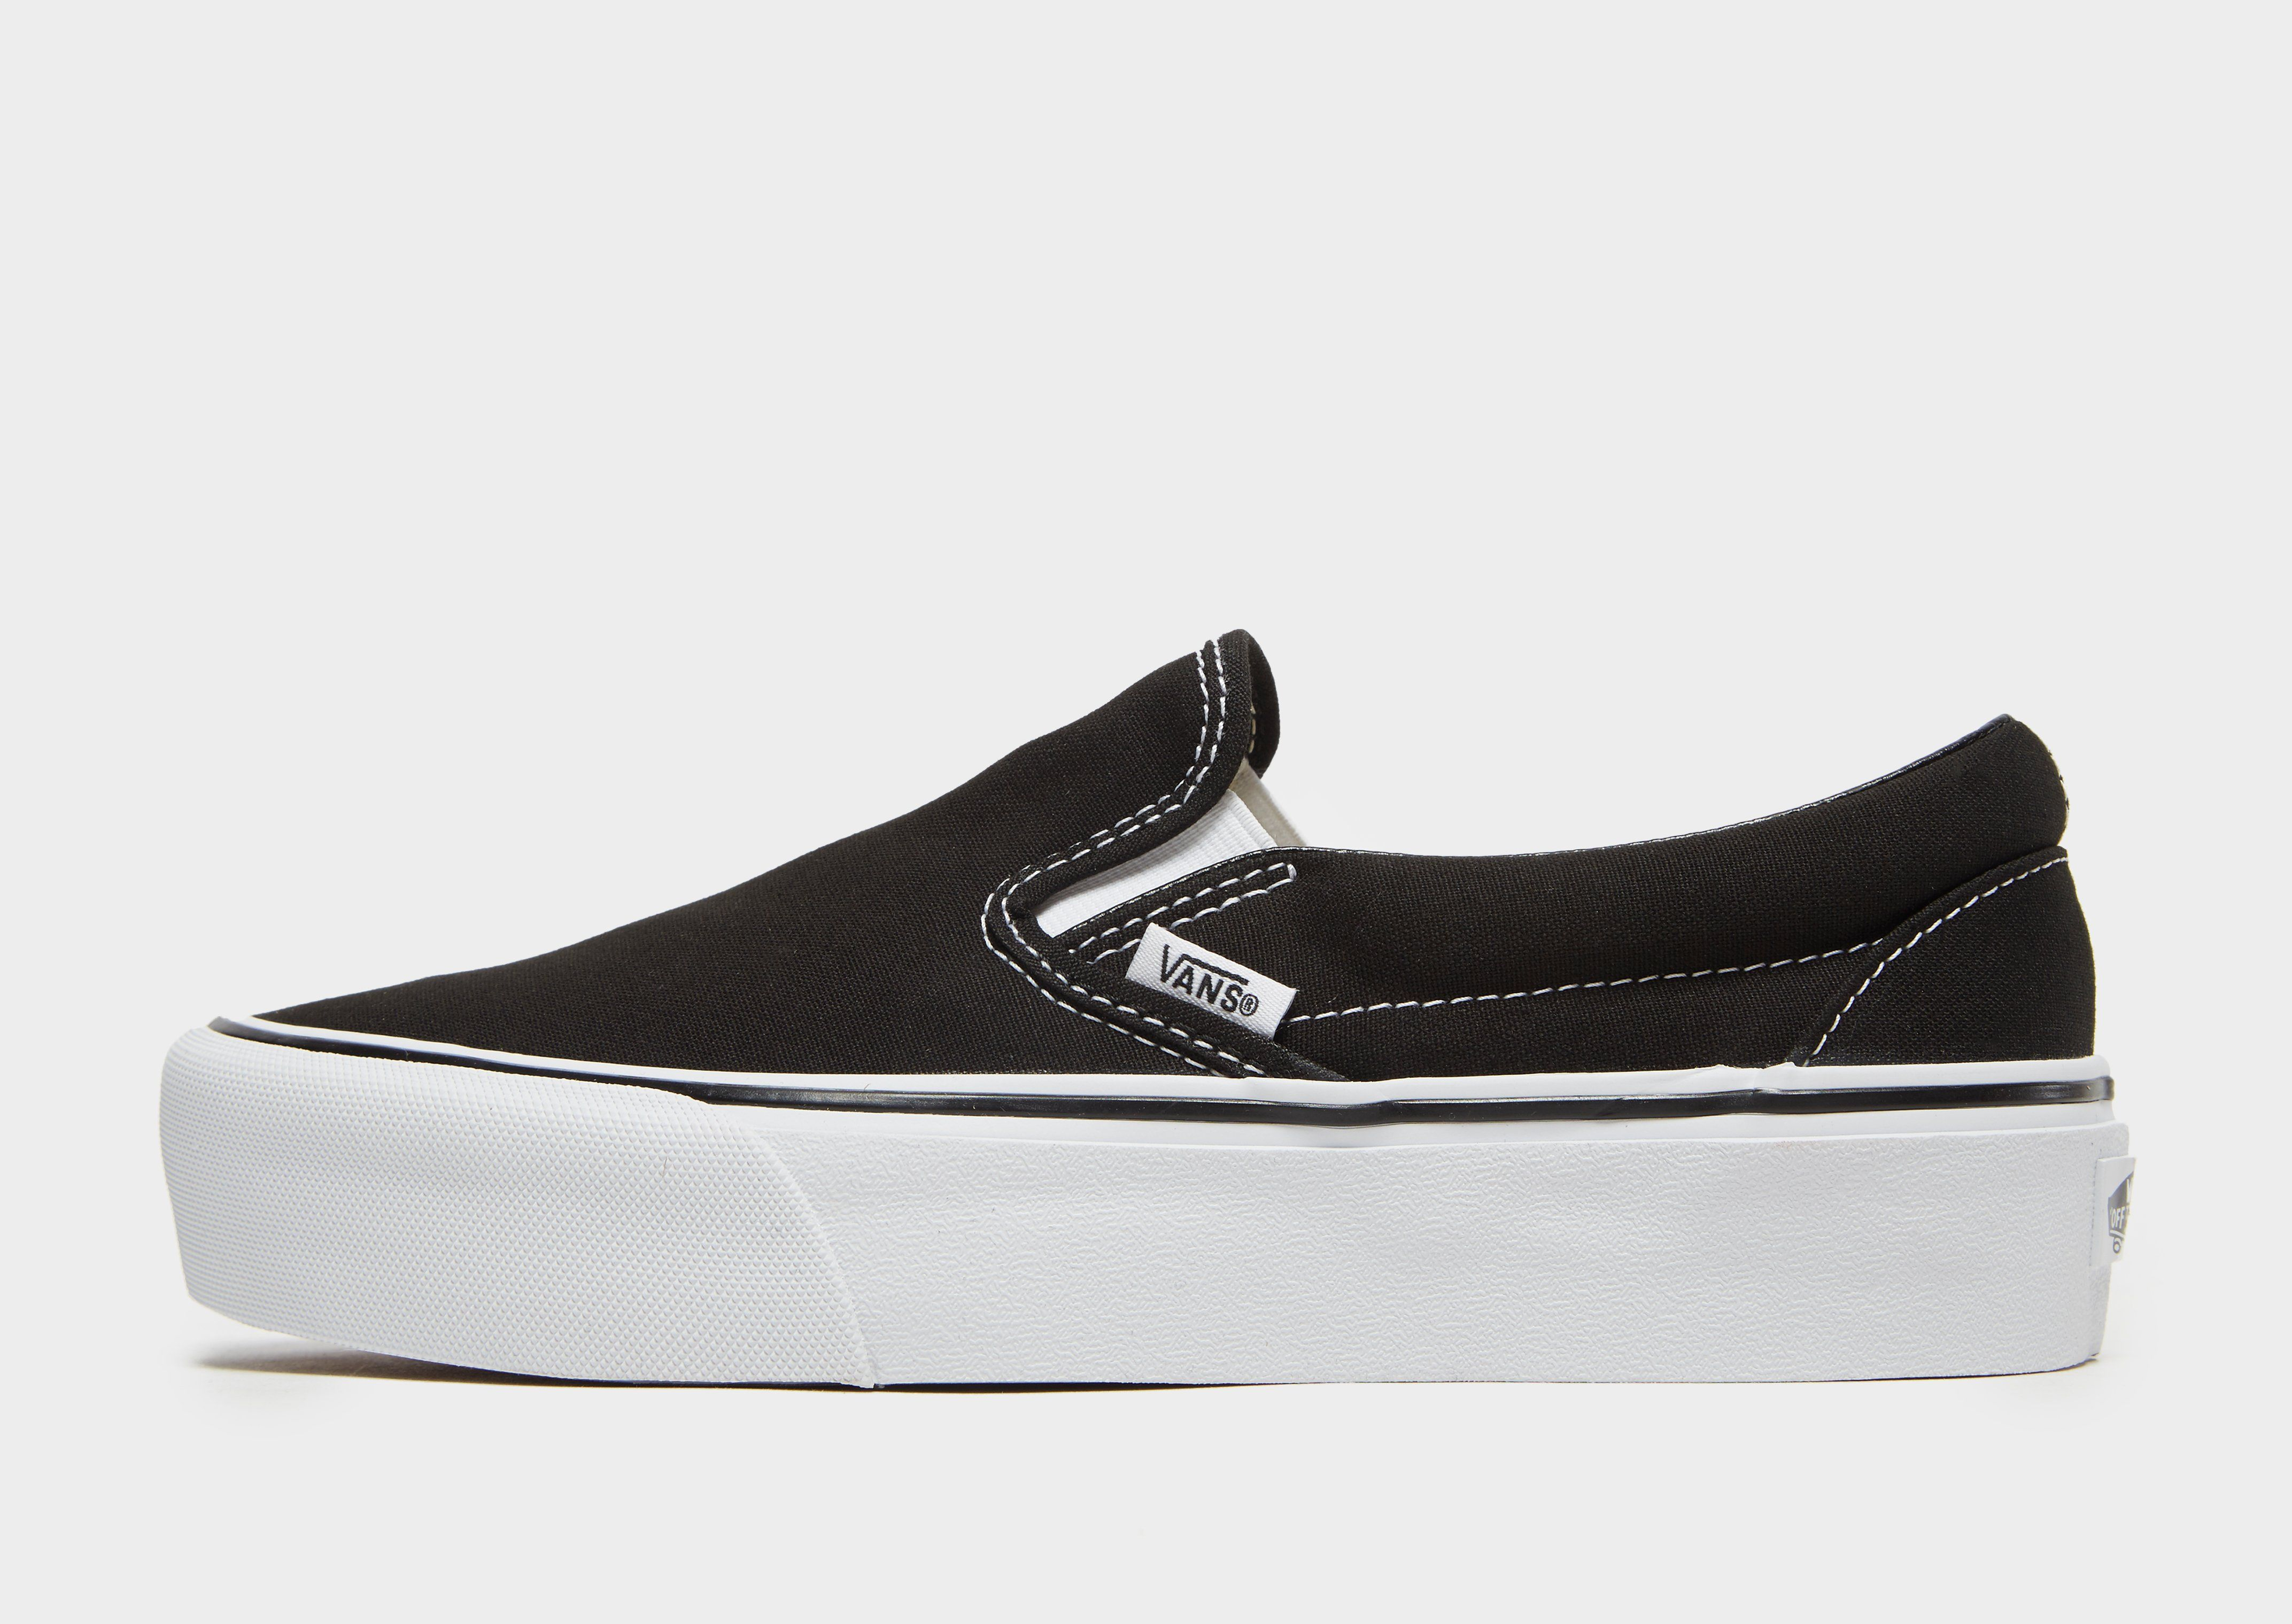 756090e0750c80 Vans Slip-On Platform Women s ...